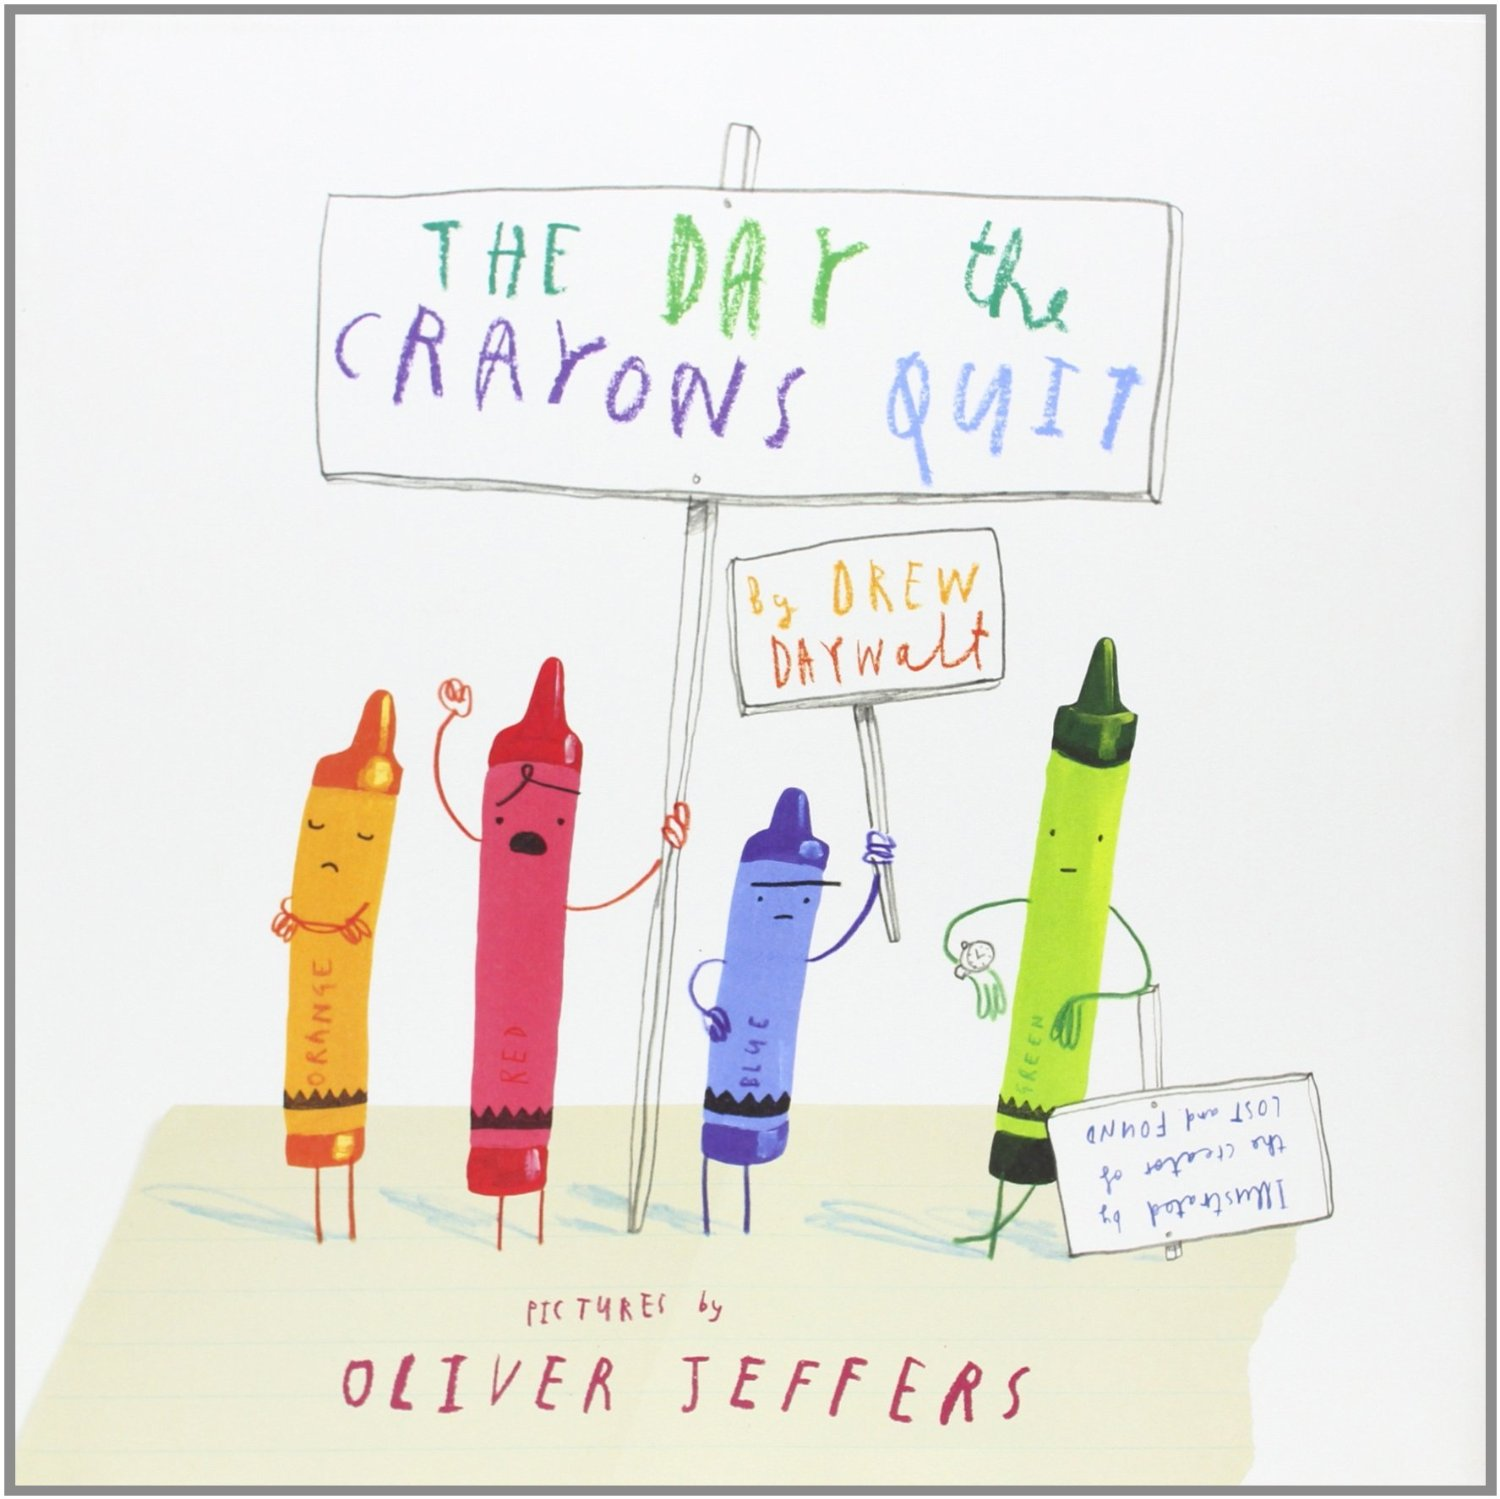 http://www.oliverjeffers.com/picture-books/the-day-the-crayons-quit